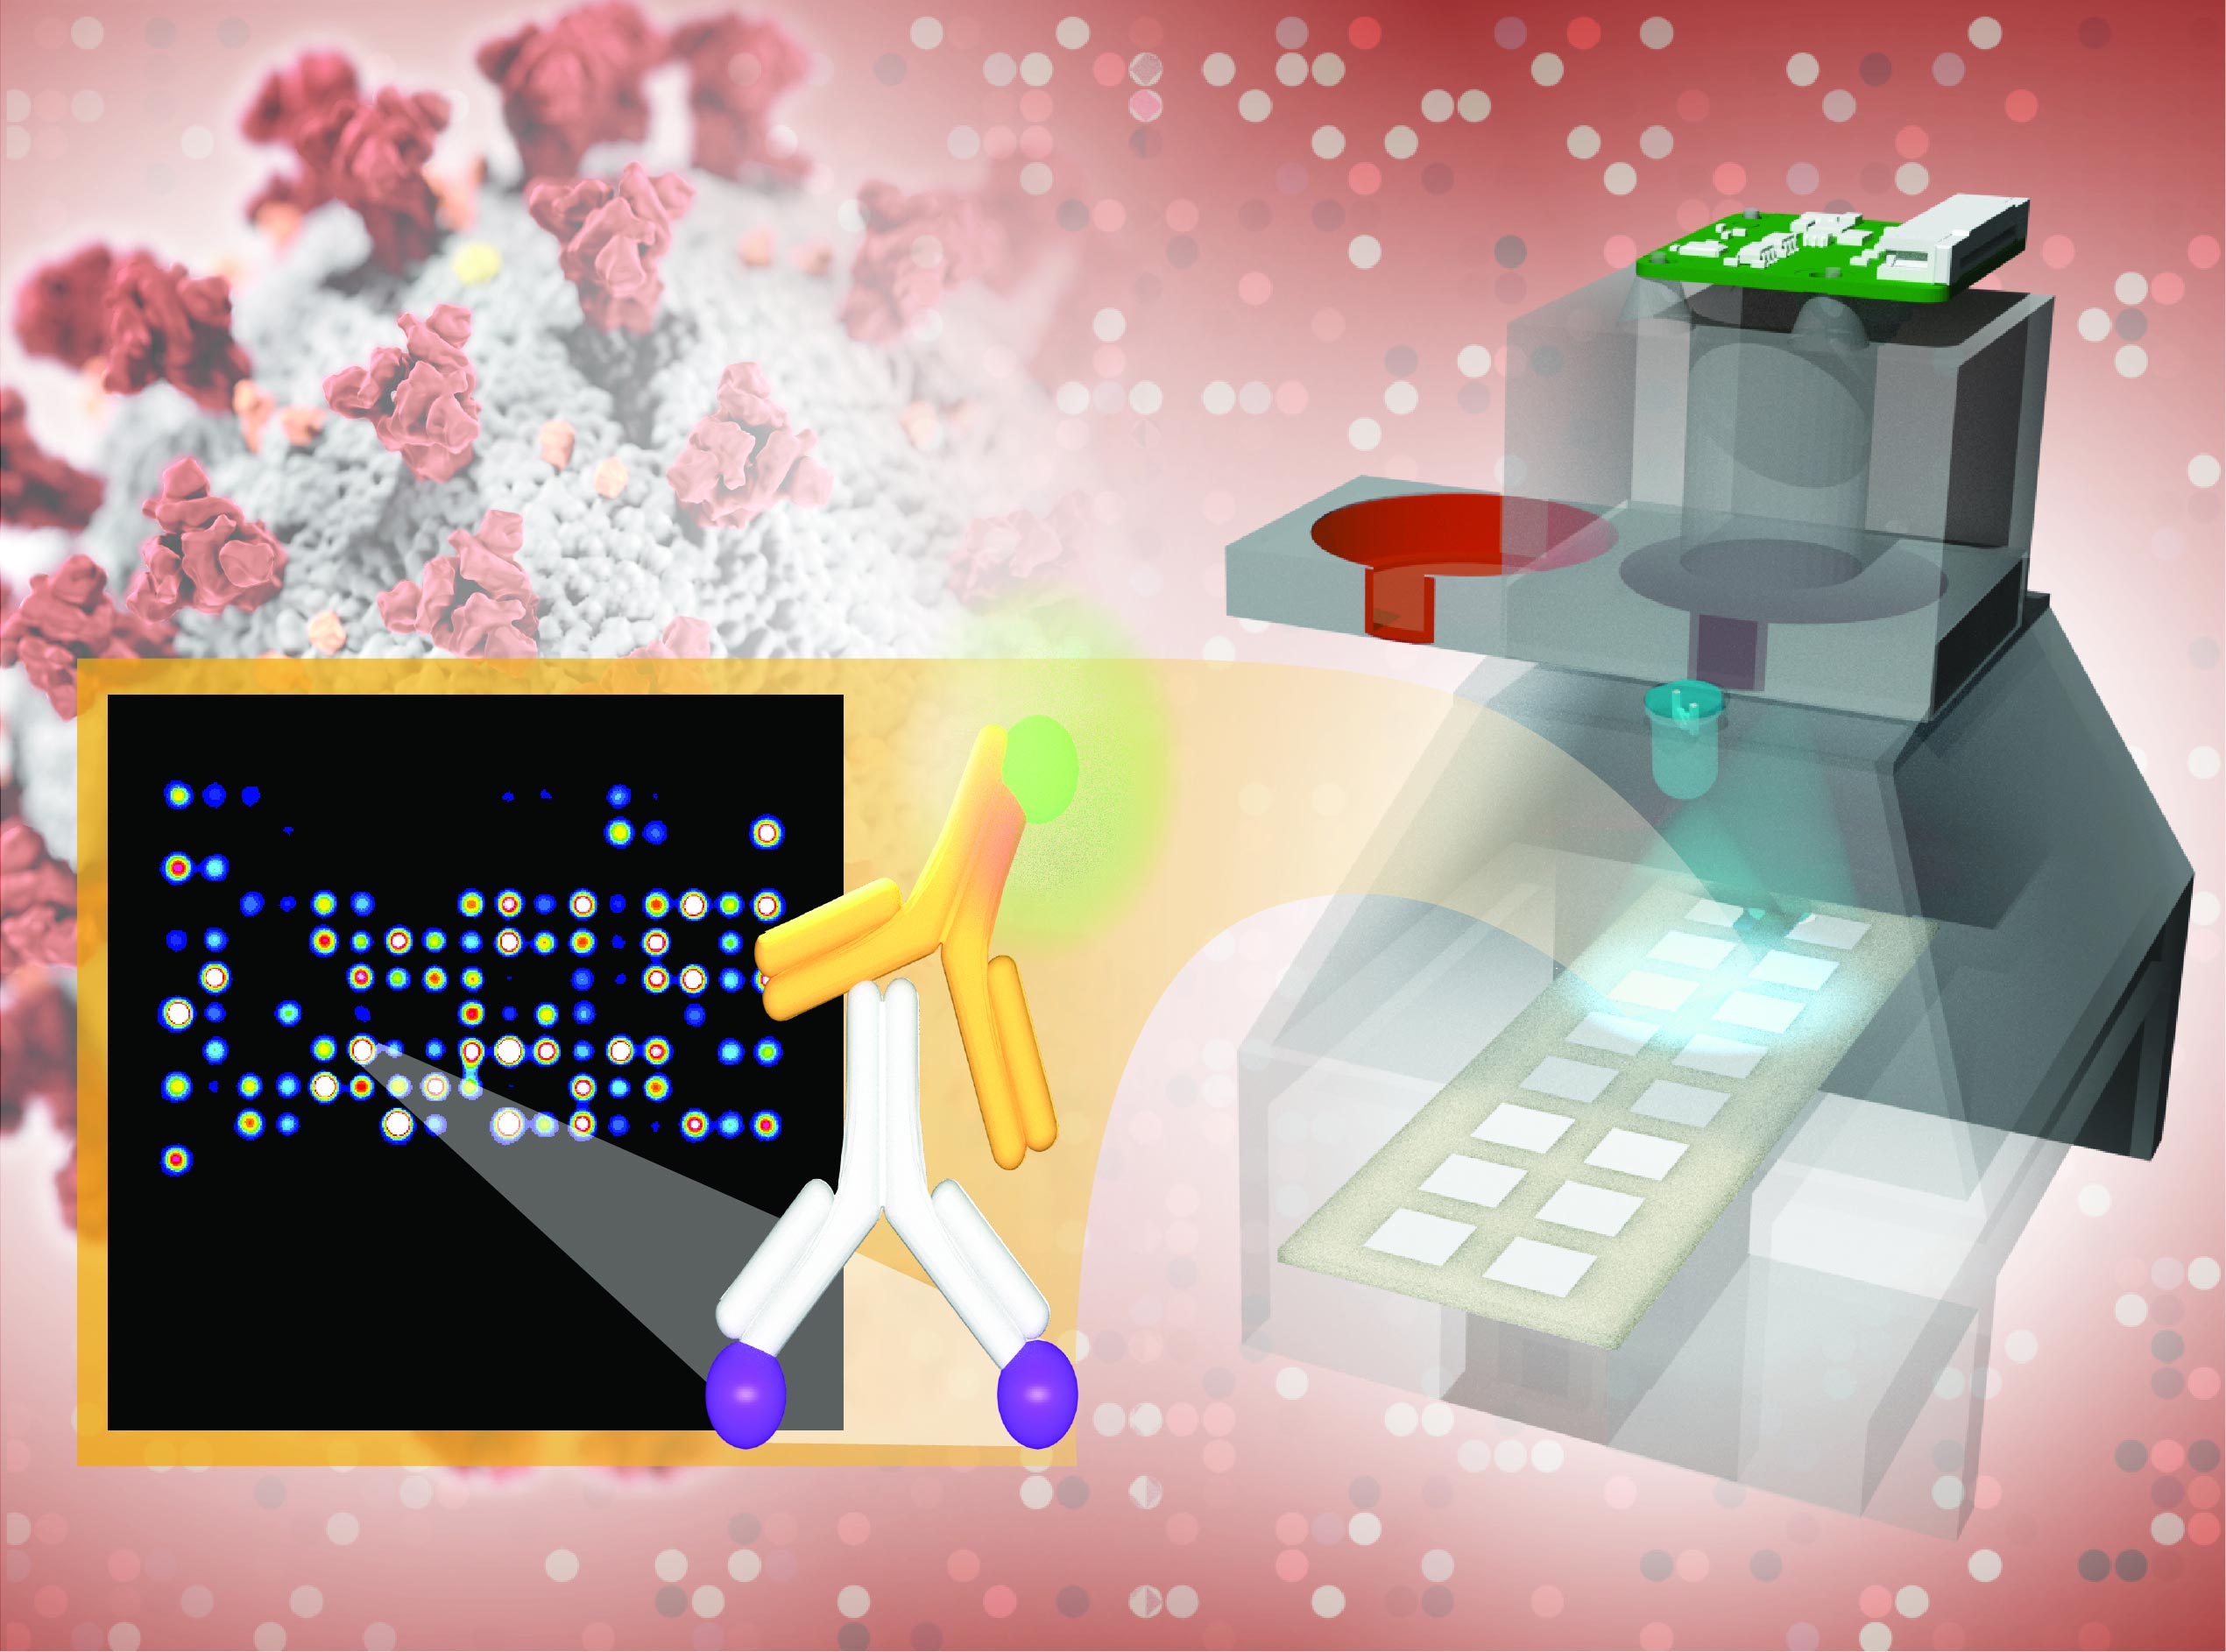 New Low-Cost, Accurate COVID-19 Antibody Detection Platform Developed